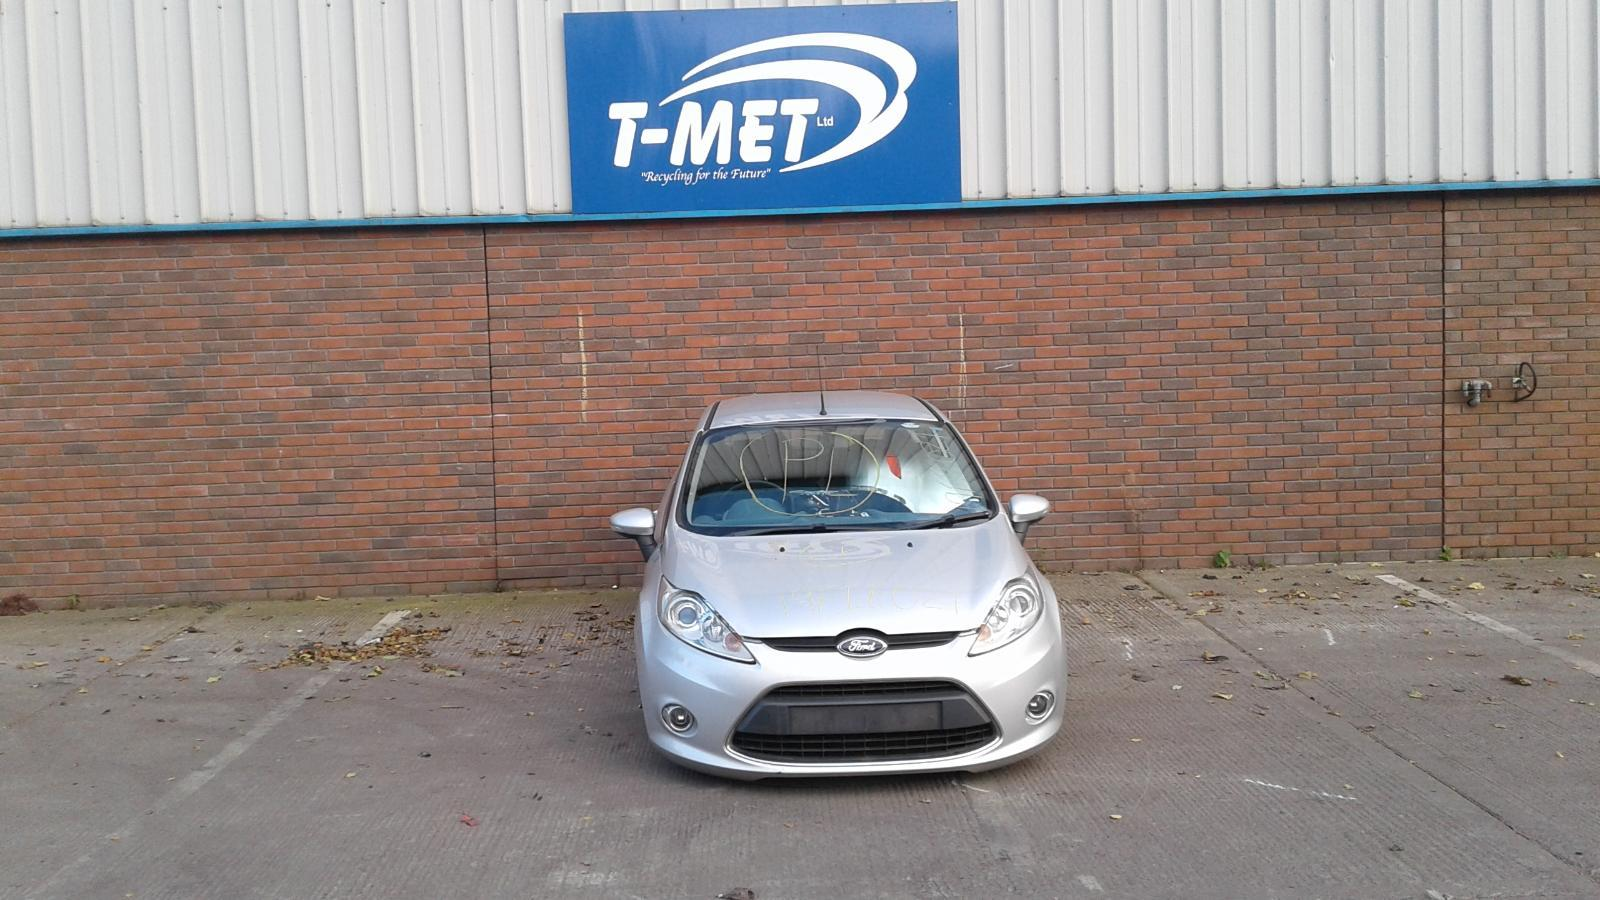 2010 FORD FIESTA Image